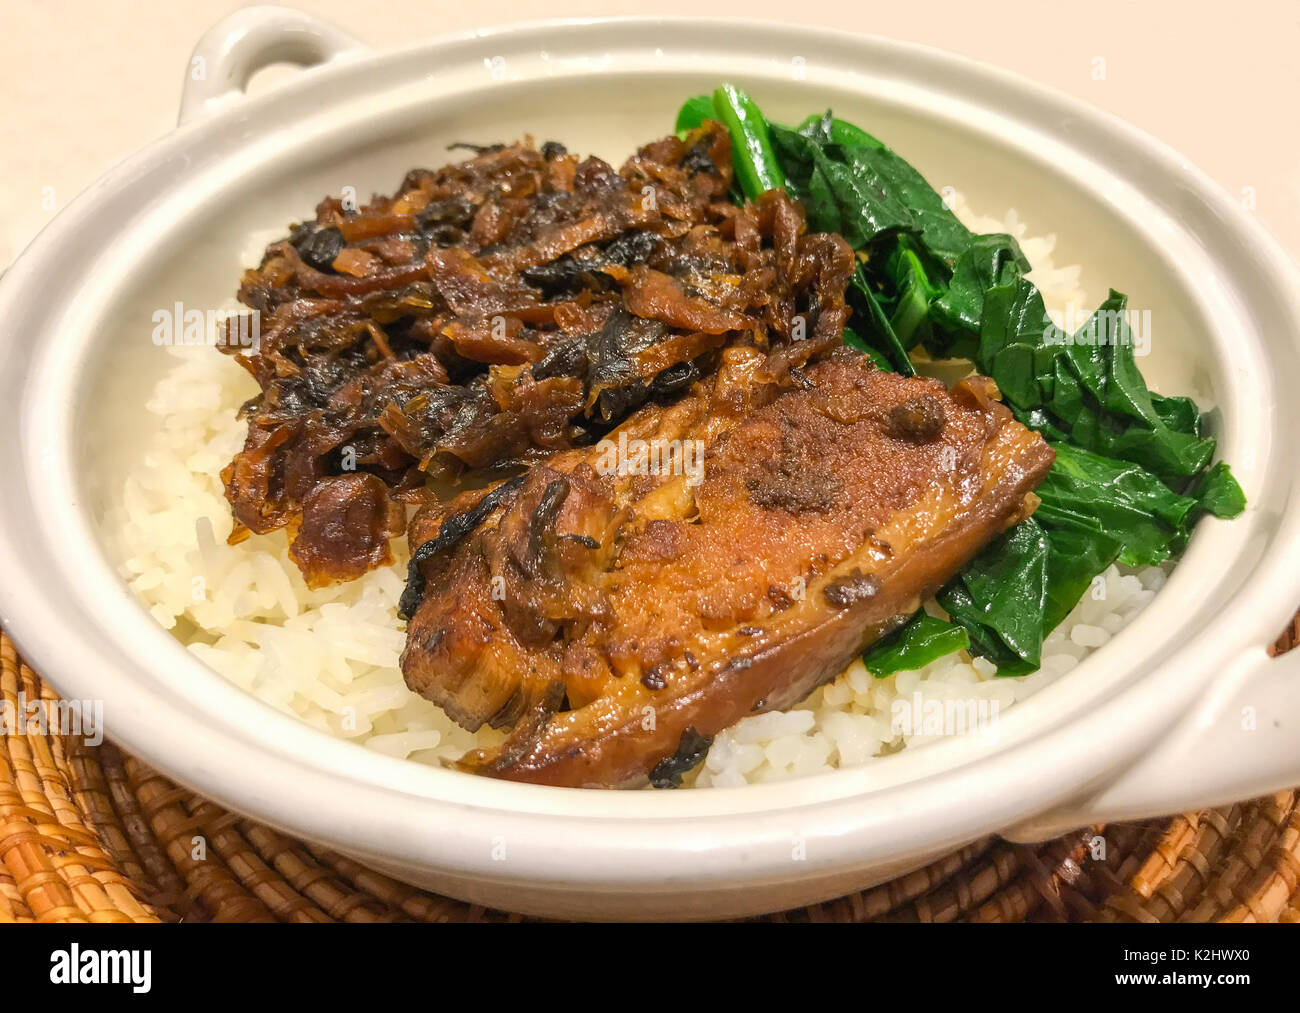 Steamed belly pork with swatow mustard cabbage recipes asian stock steamed belly pork with swatow mustard cabbage recipes asian traditional chinese food forumfinder Image collections